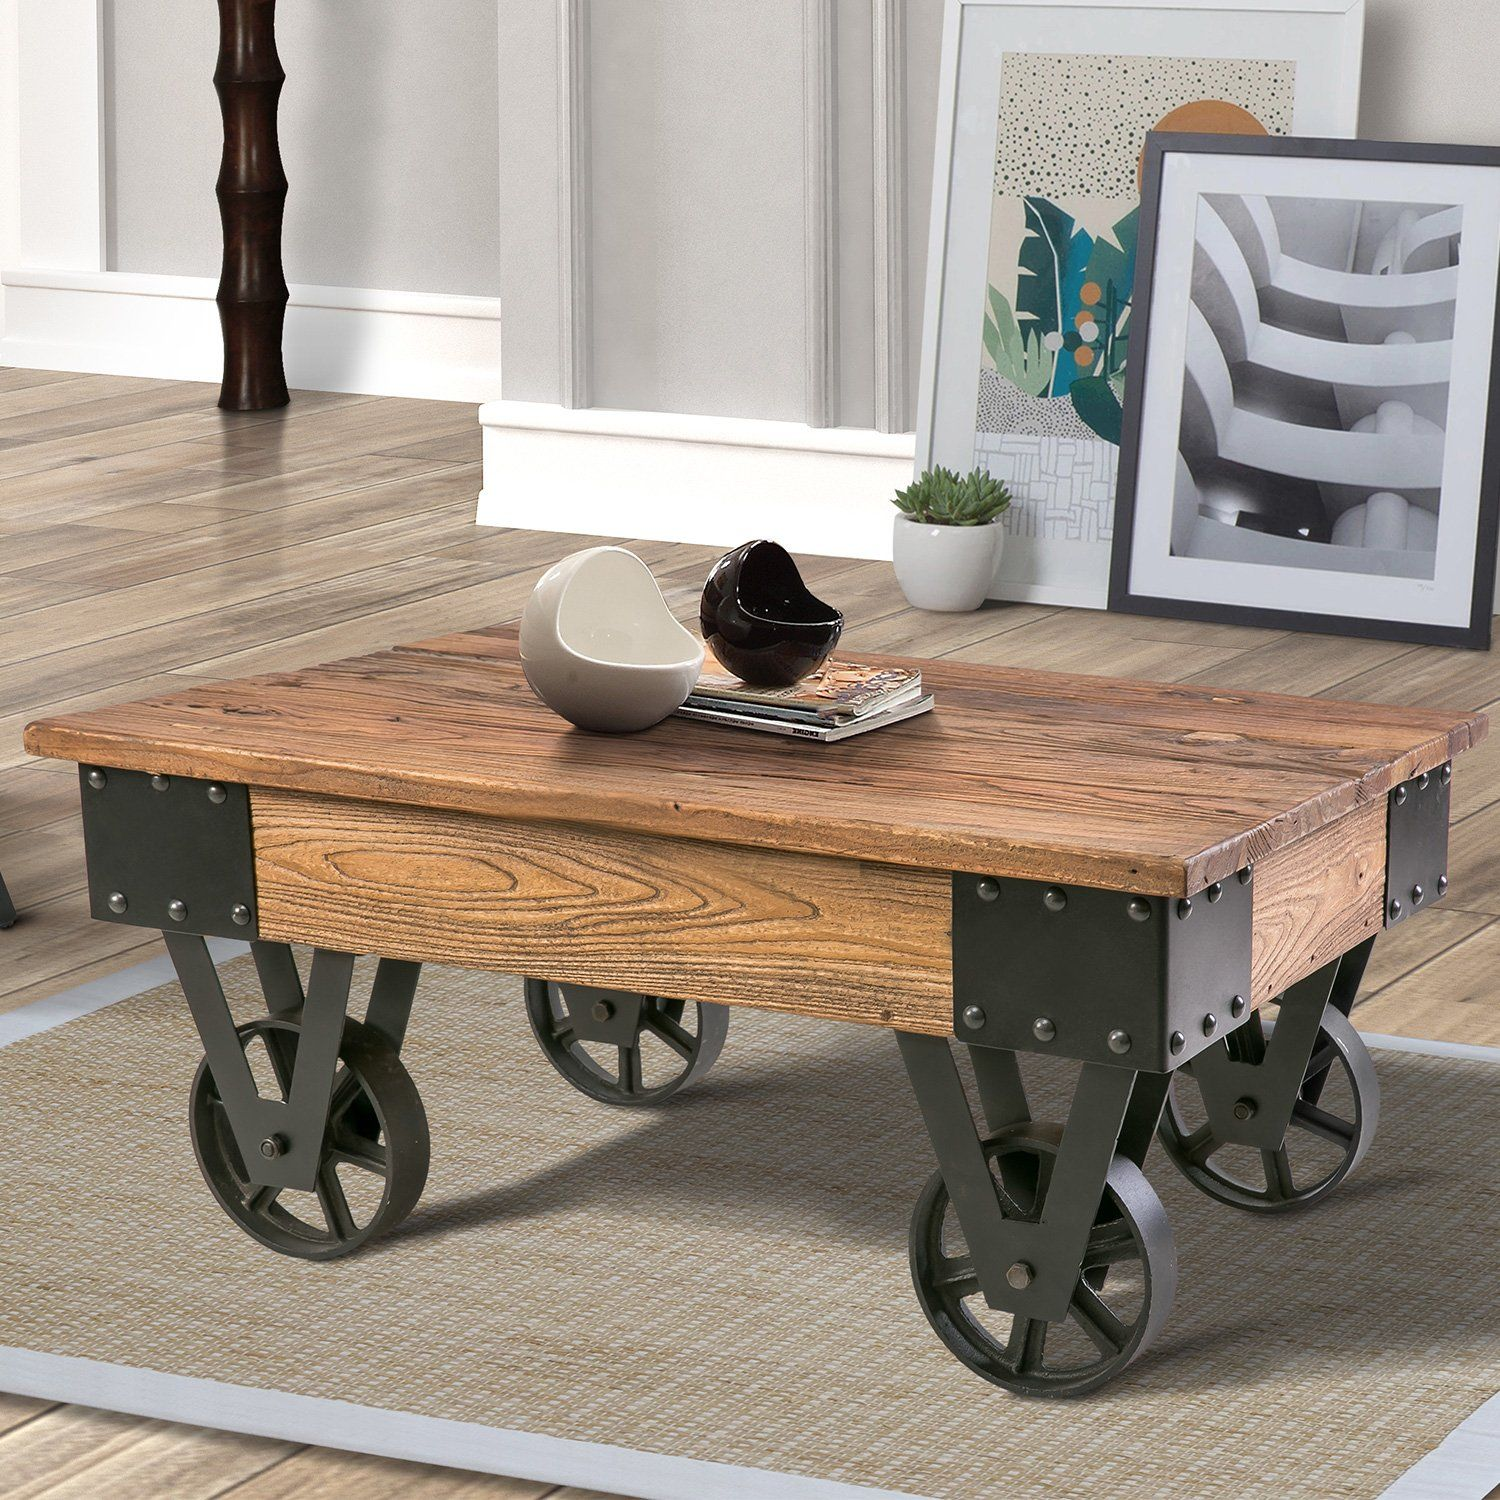 Amazon Com Harper Bright Designs Coffee Table 47 2 Cocktail Table Wood Look Accent Furniture With Metal Living Room Table Rustic Coffee Tables Coffee Table [ 1500 x 1500 Pixel ]